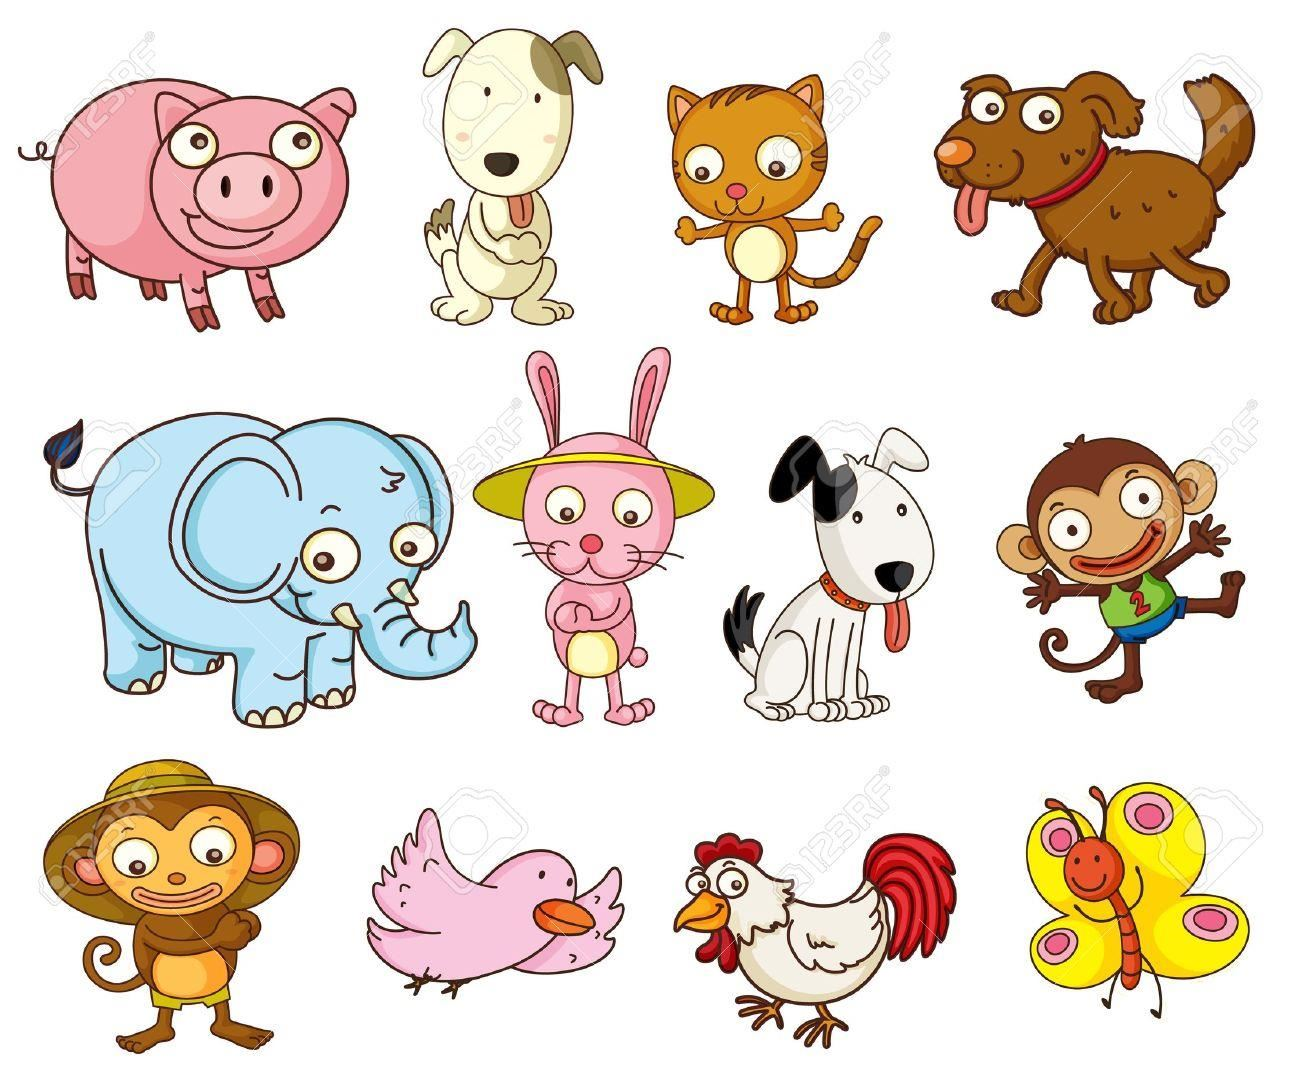 animals clipart fotolip com rich image and wallpaper rh fotolip com clip art animals cartoon clip art animal faces